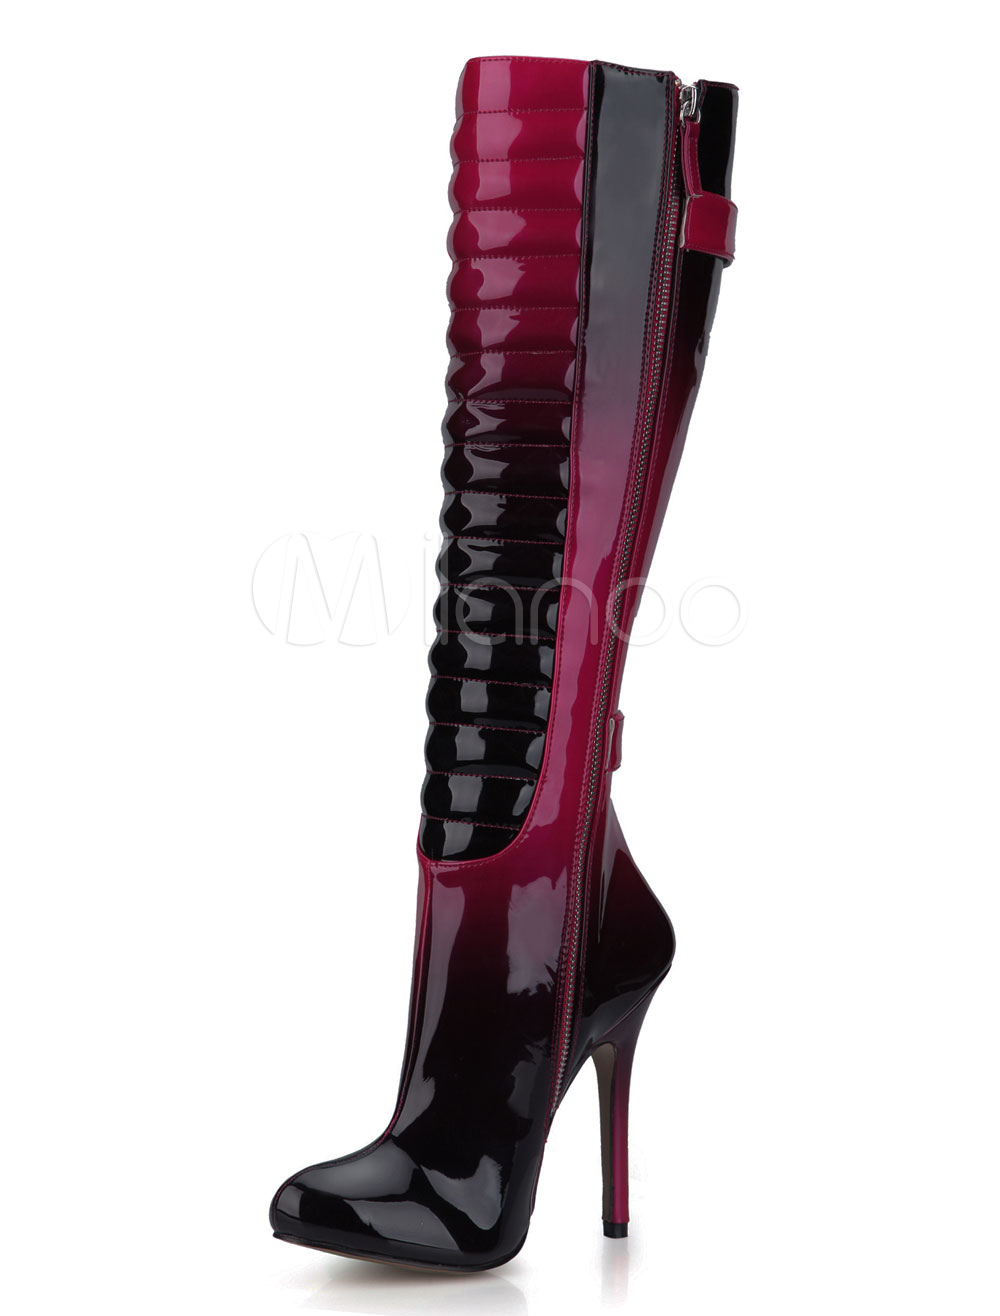 longueur genou bottes talon haut rouge de la femme ronde toe stiletto bottes. Black Bedroom Furniture Sets. Home Design Ideas